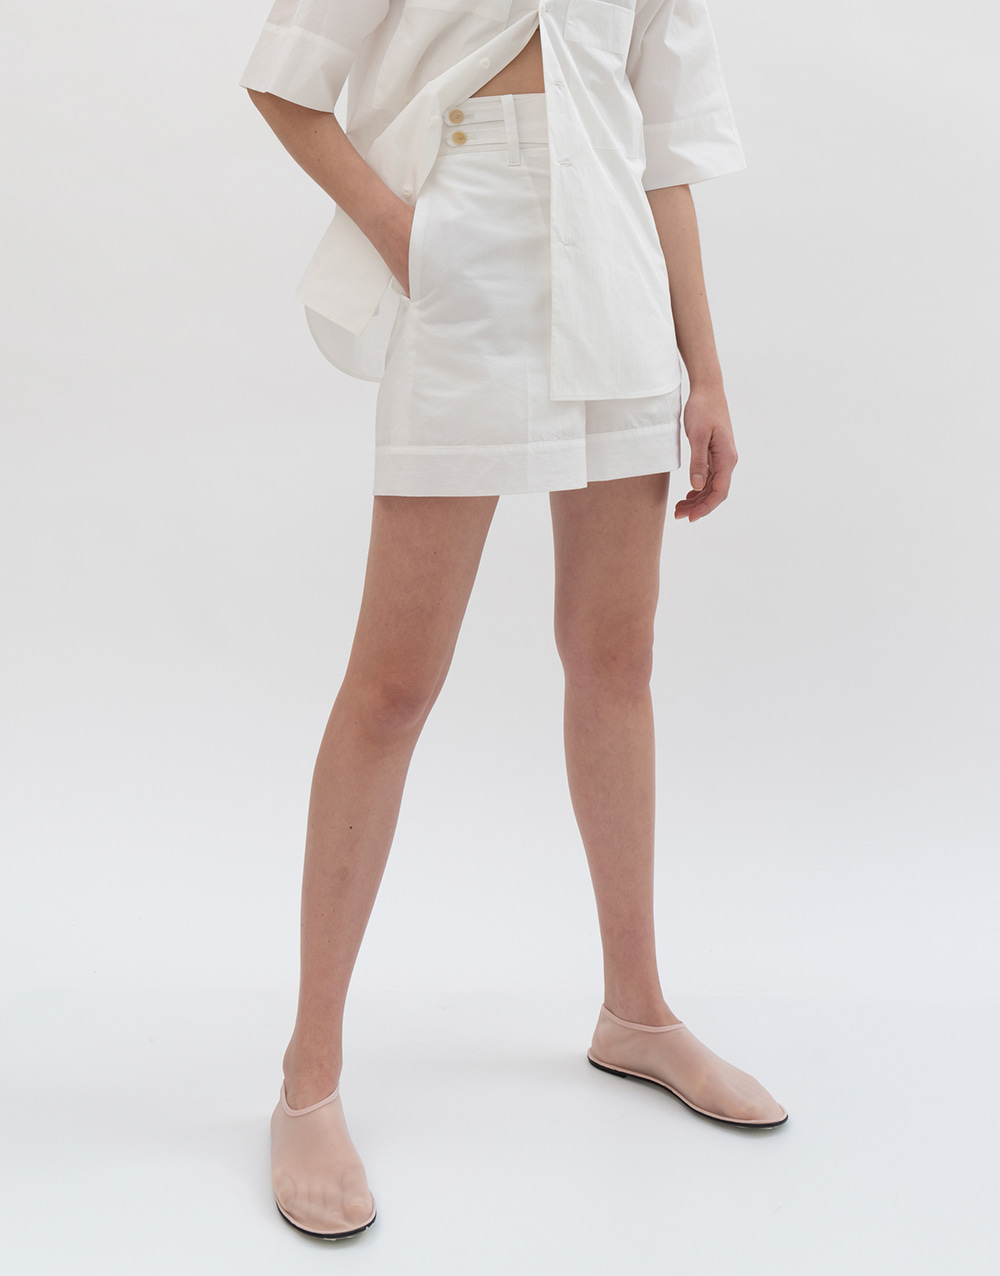 GBH APPAREL ADULT Belted High-waist Shorts WHITE